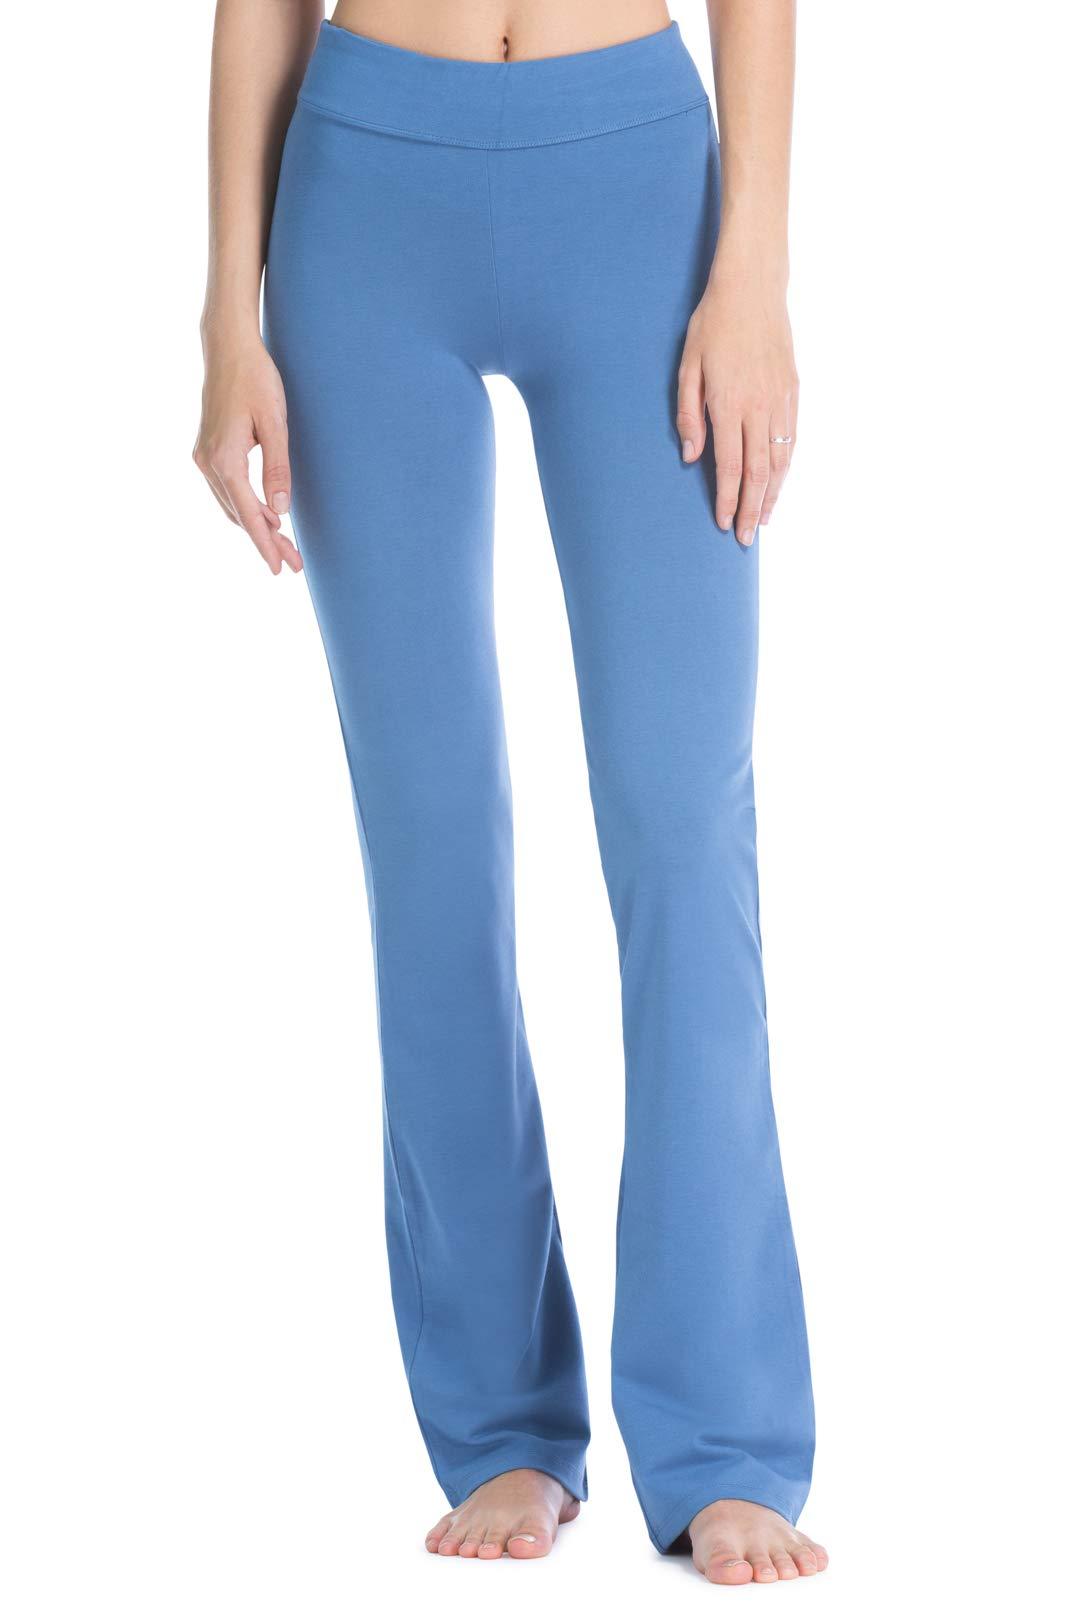 Fishers Finery Women's Ecofabric Classic Bootleg Yoga Pant; Athletic Casual Pant